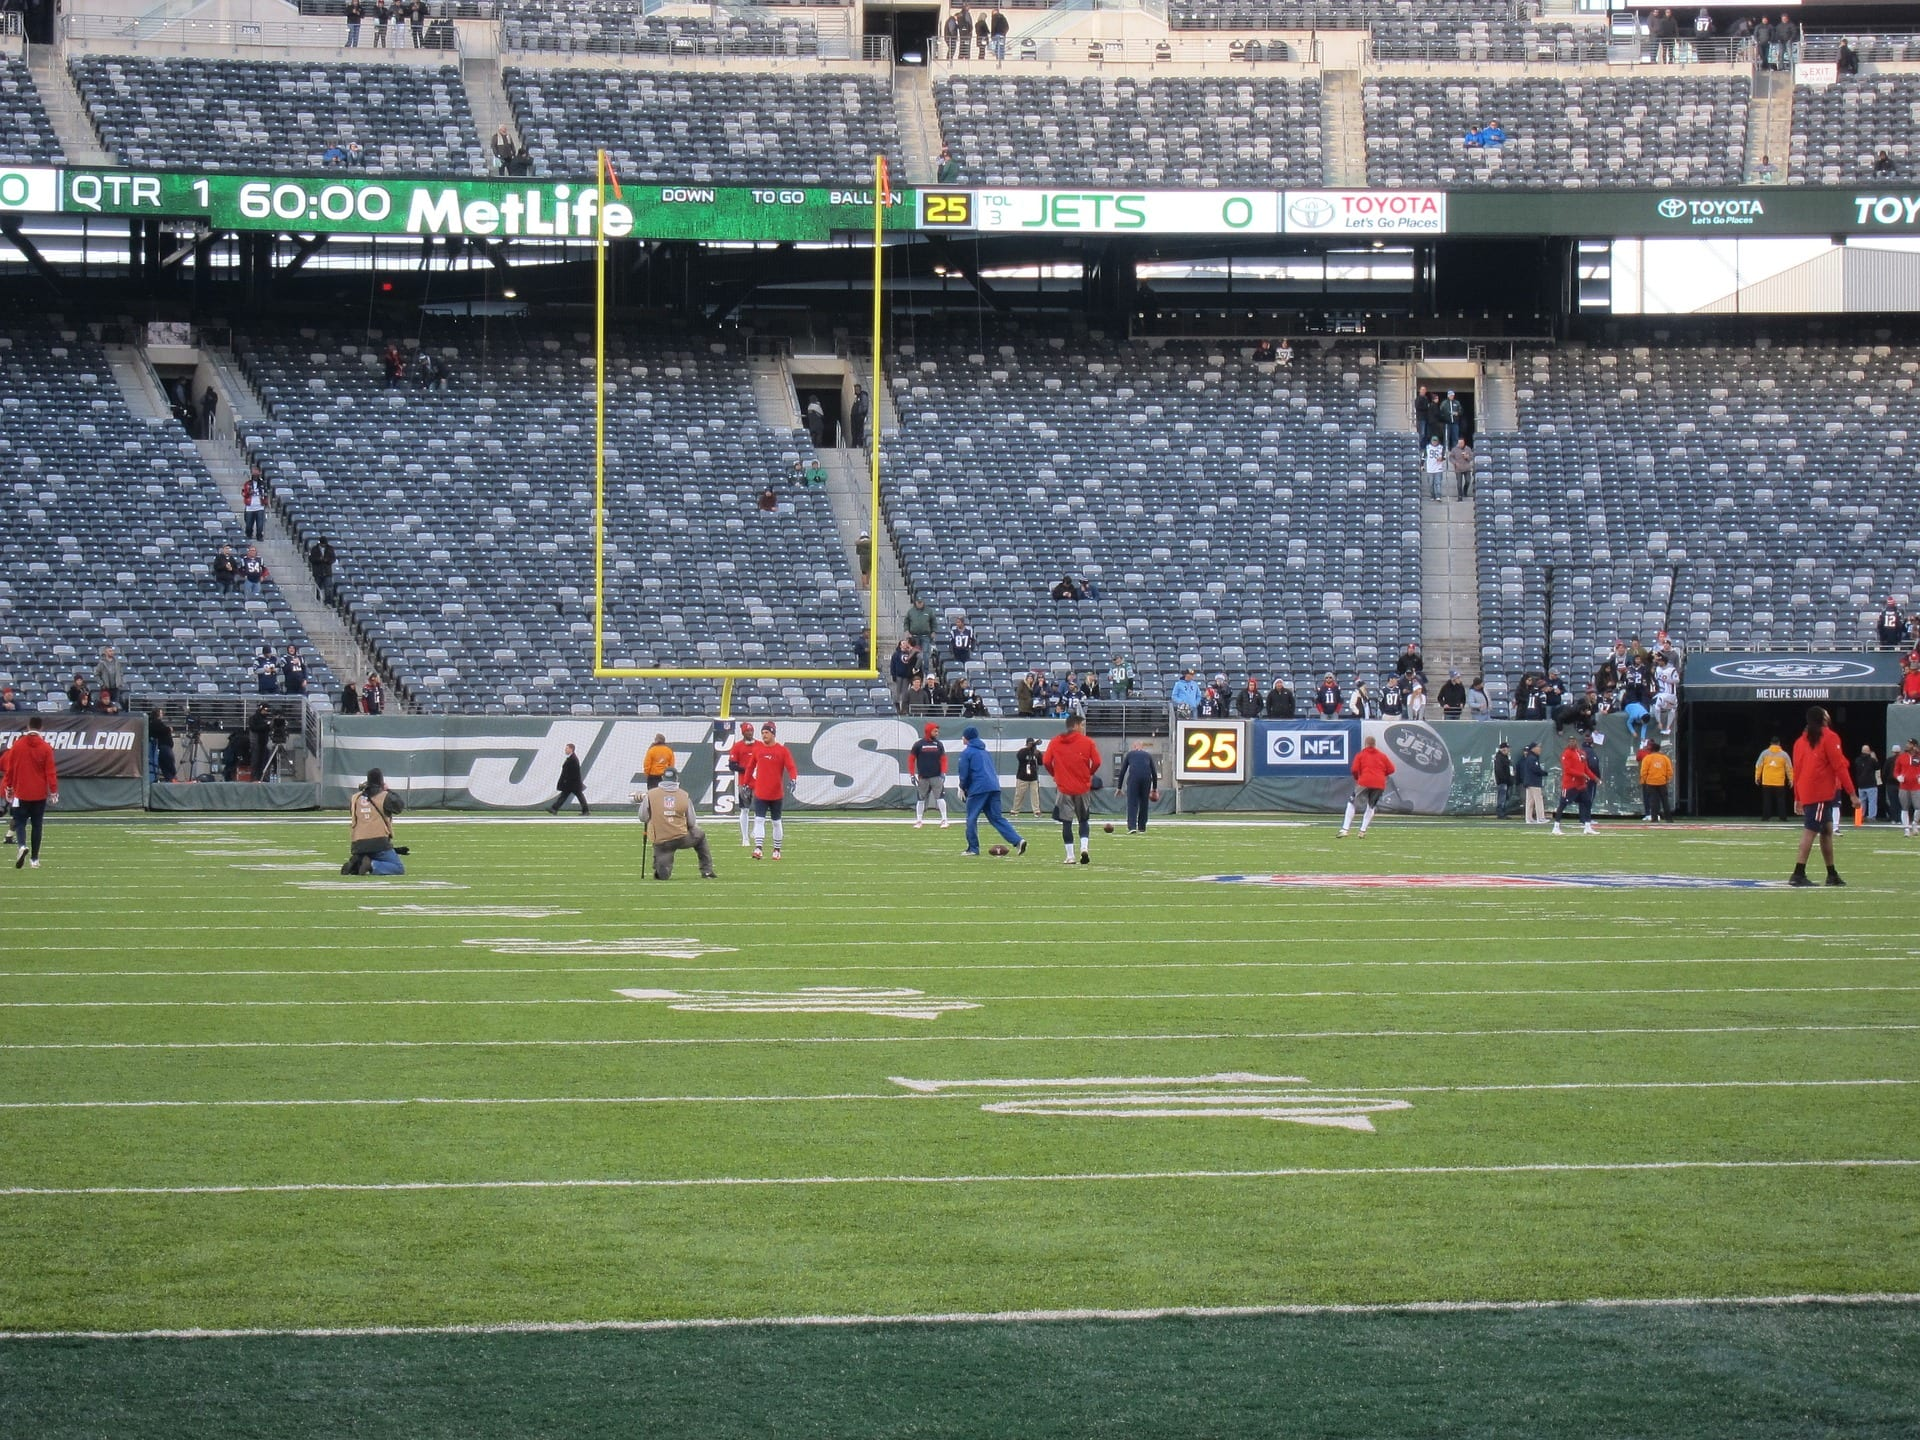 Aerodefense To Protect New York Giants And Jets From Drones